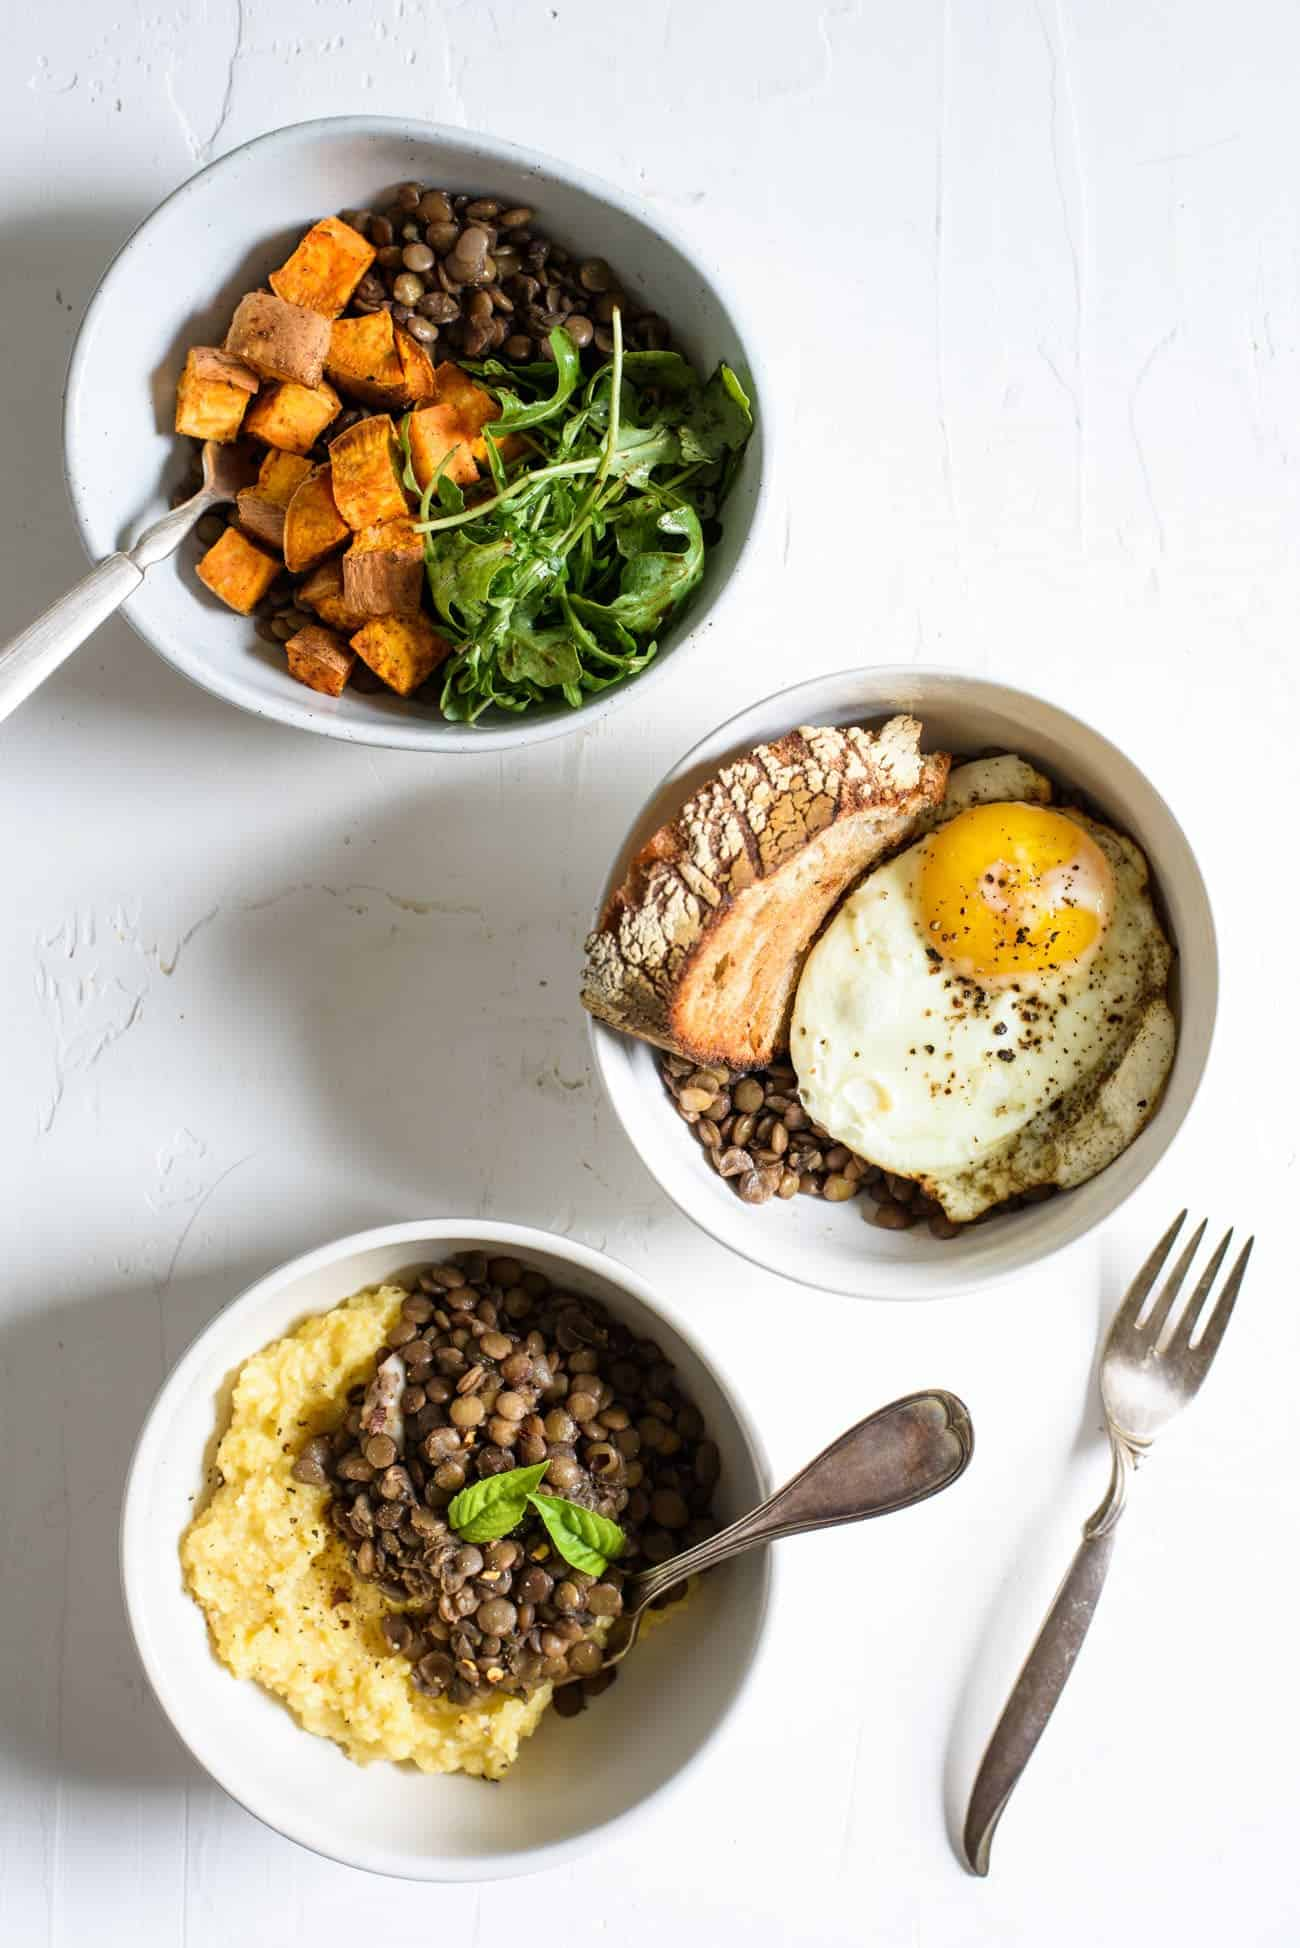 The Easiest Braised Lentils with Red Wine | The New Baguette #vegetarian #glutenfree #redwine #lentils #healthyrecipes